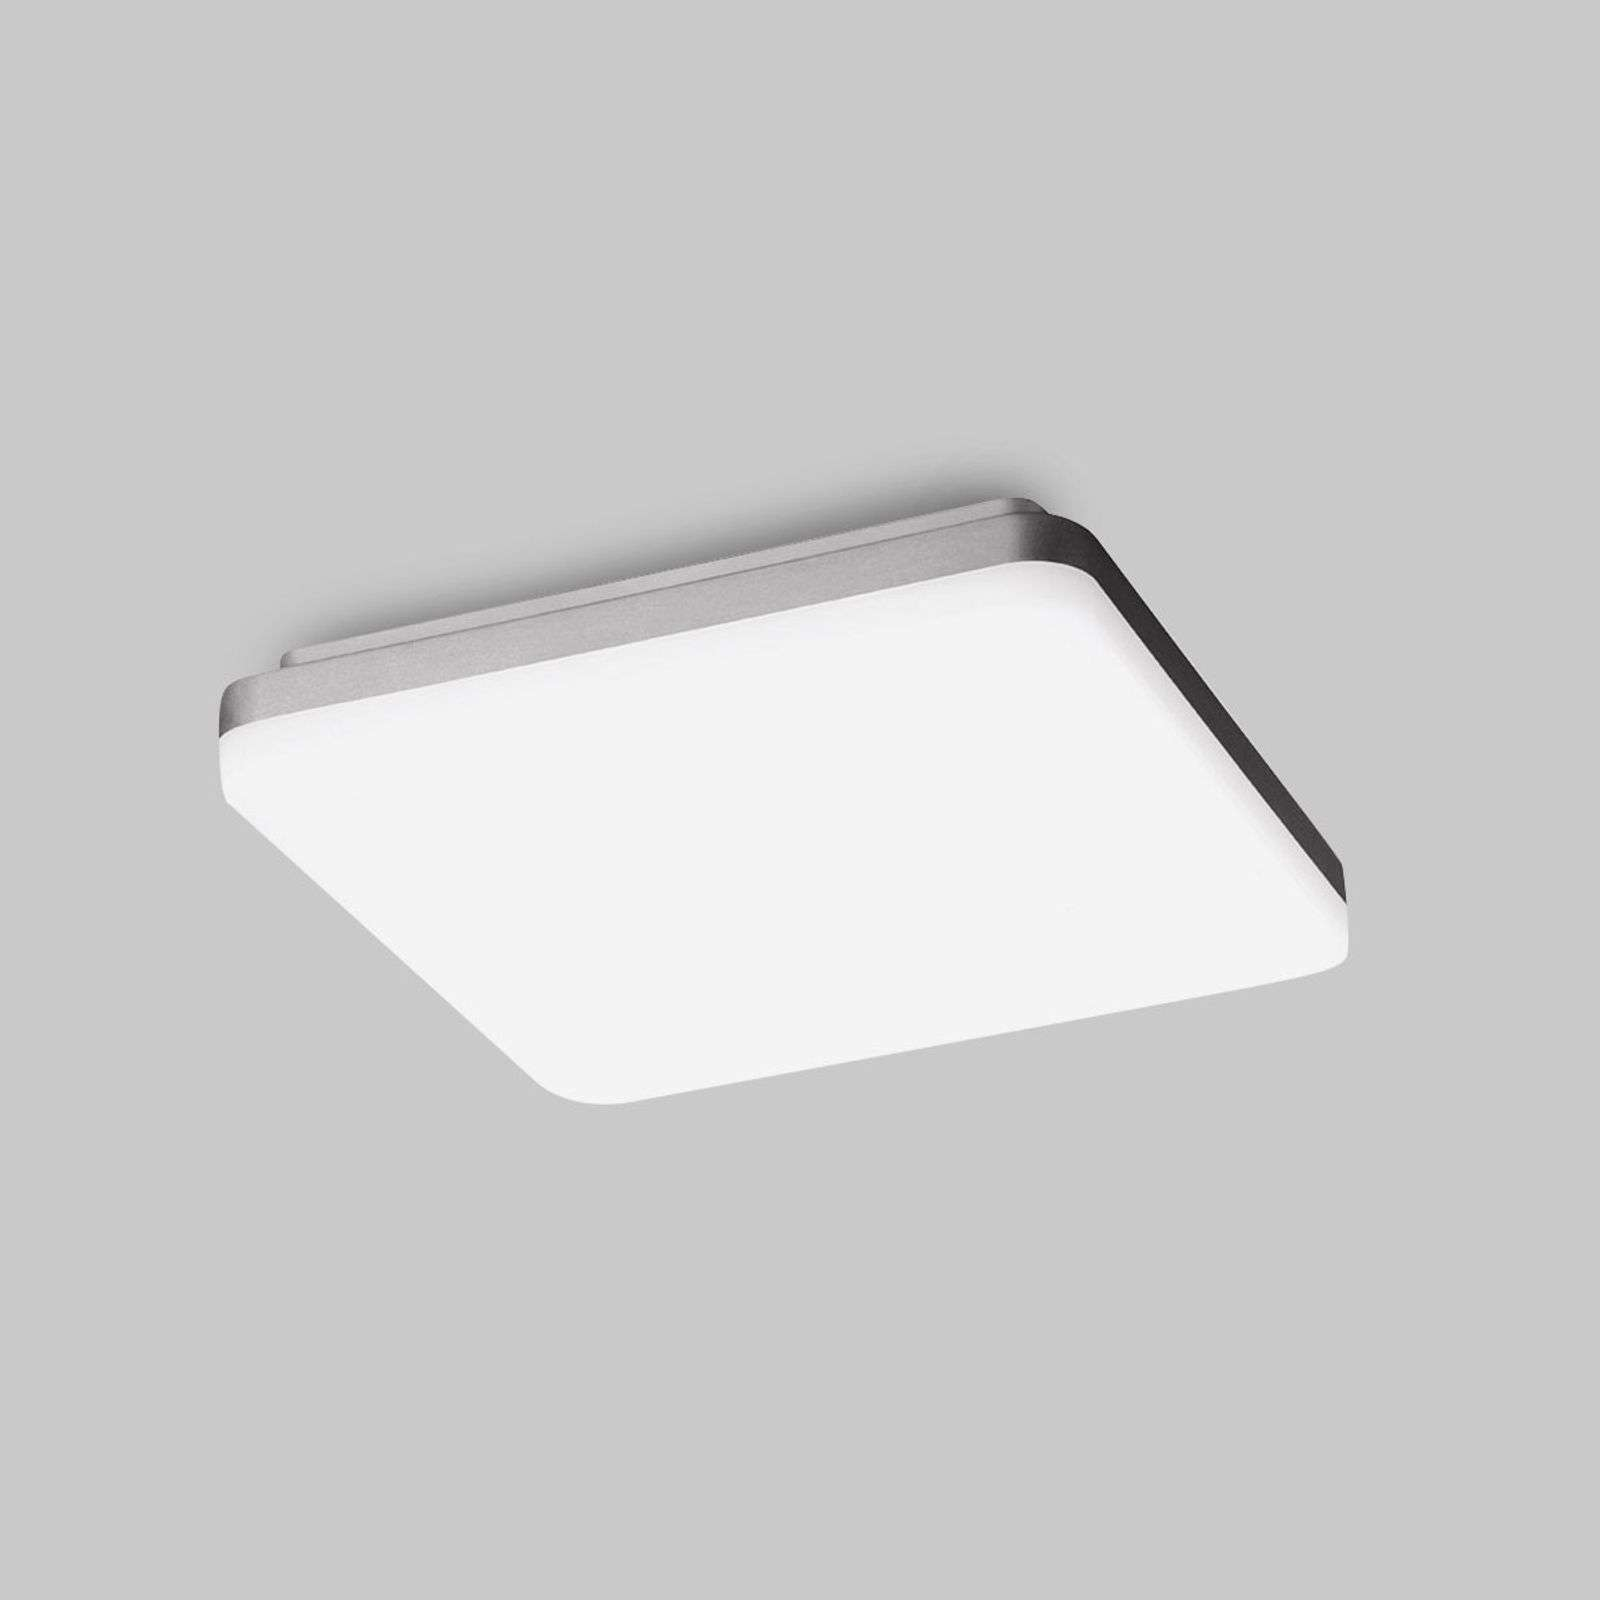 Applique LED WL210 carrée opale 4 000 K